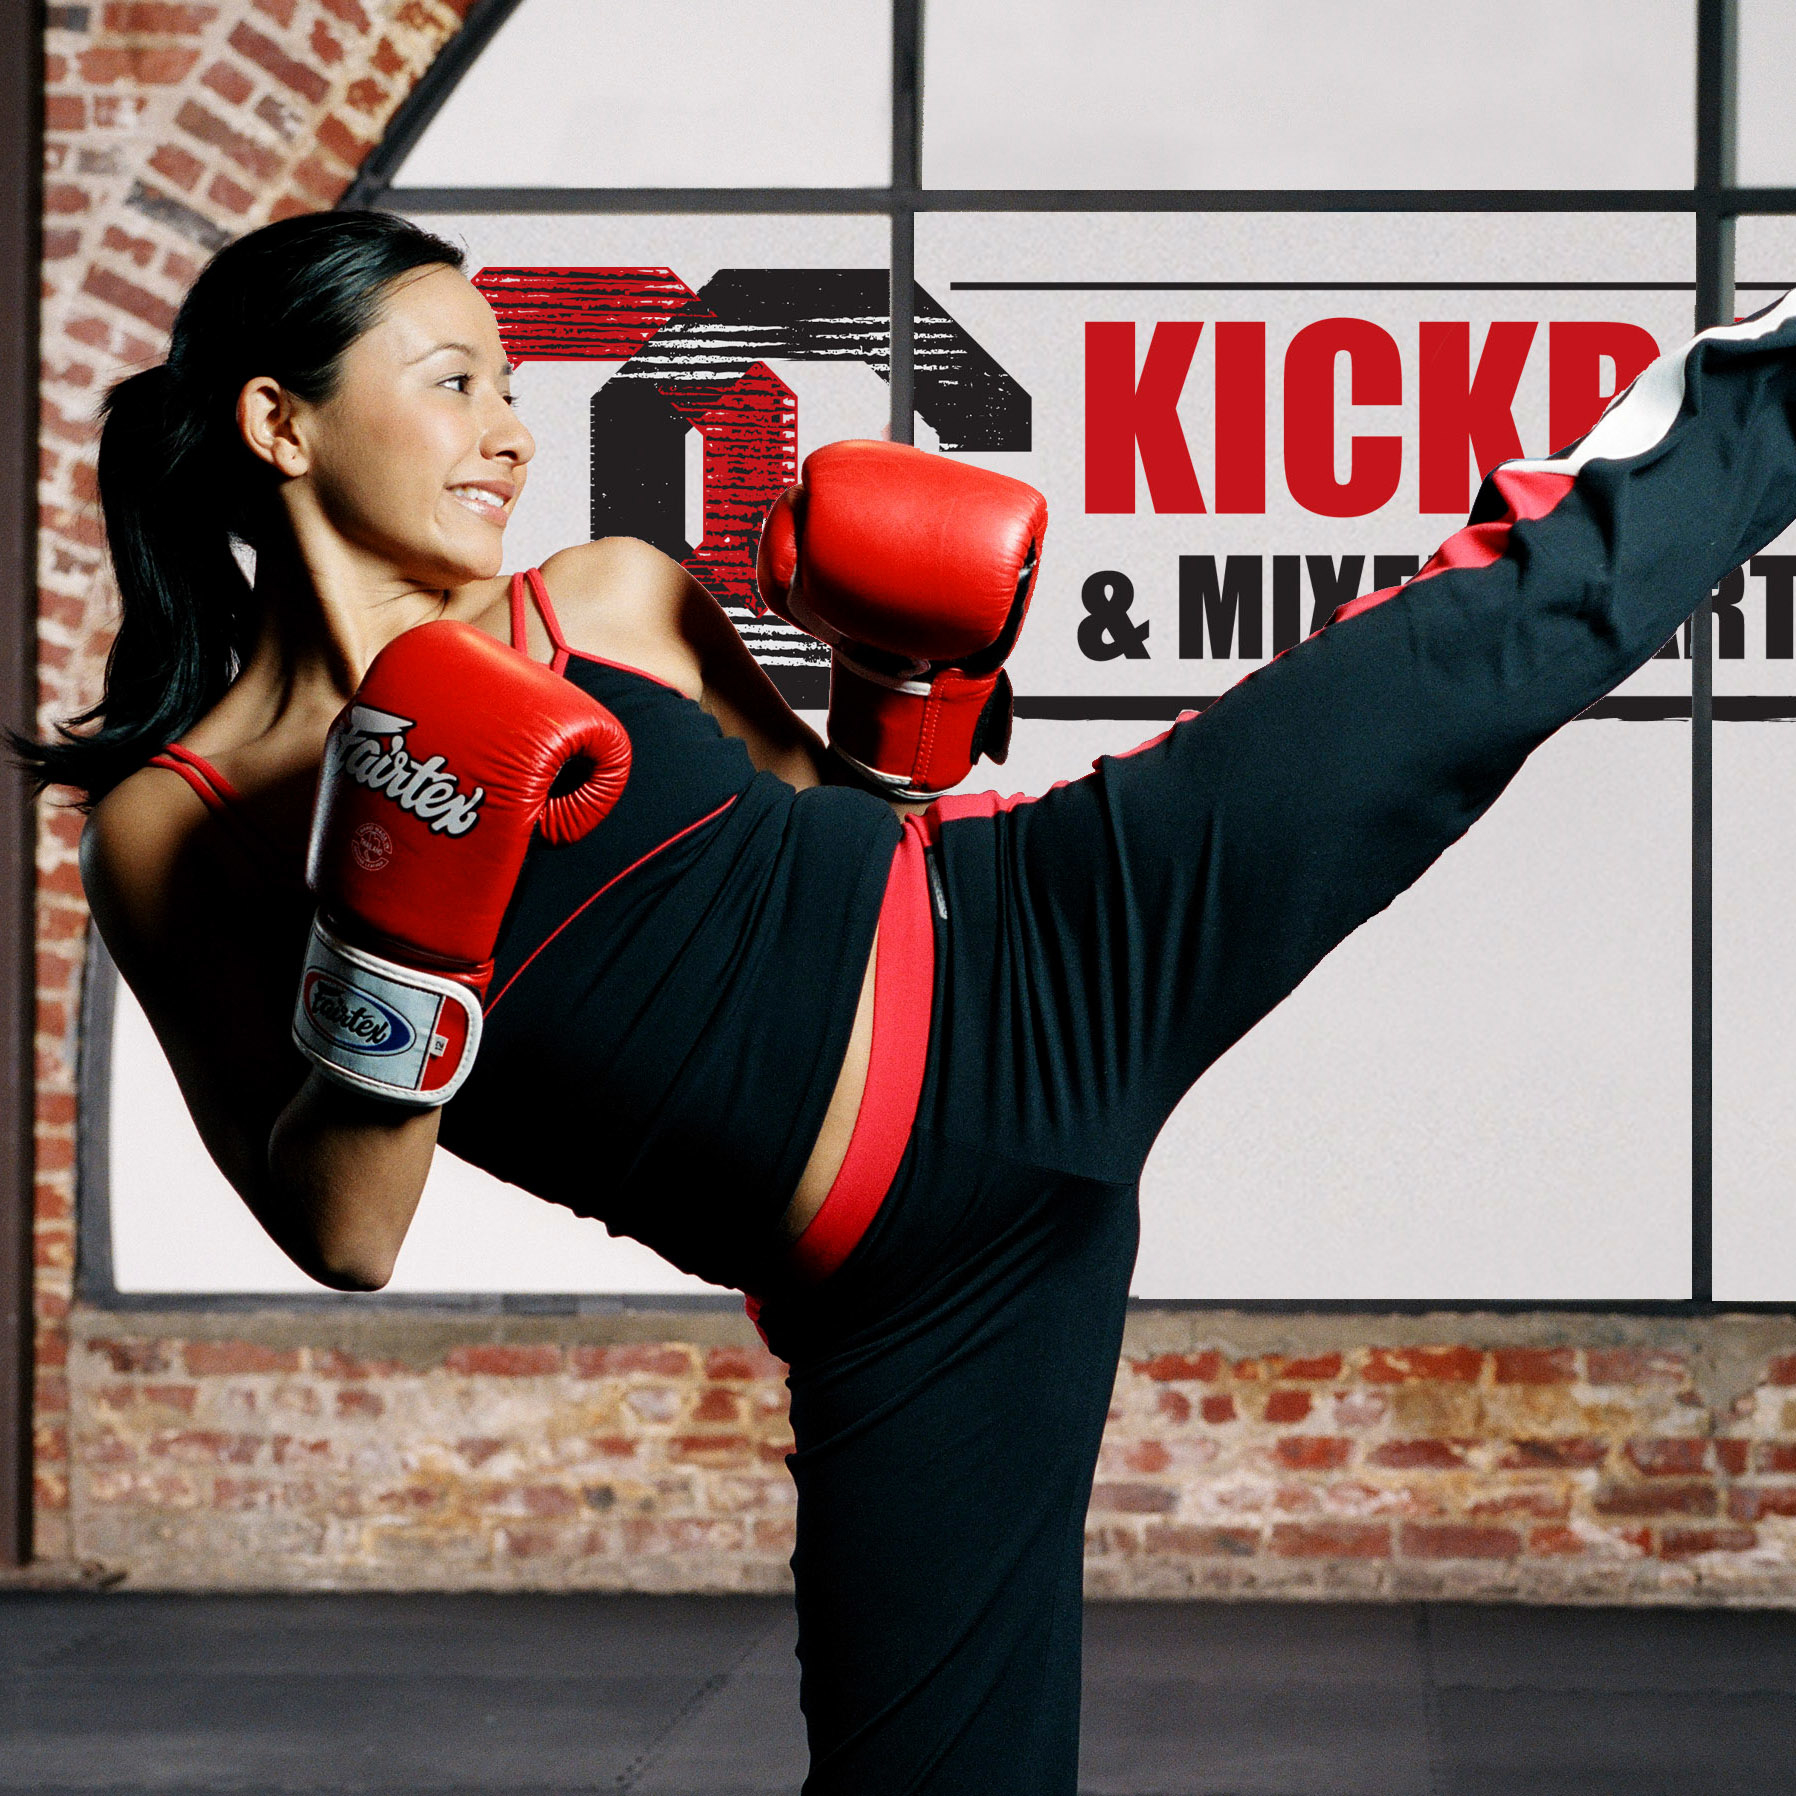 A full, private room, dedicated to fitness kickboxing classes.